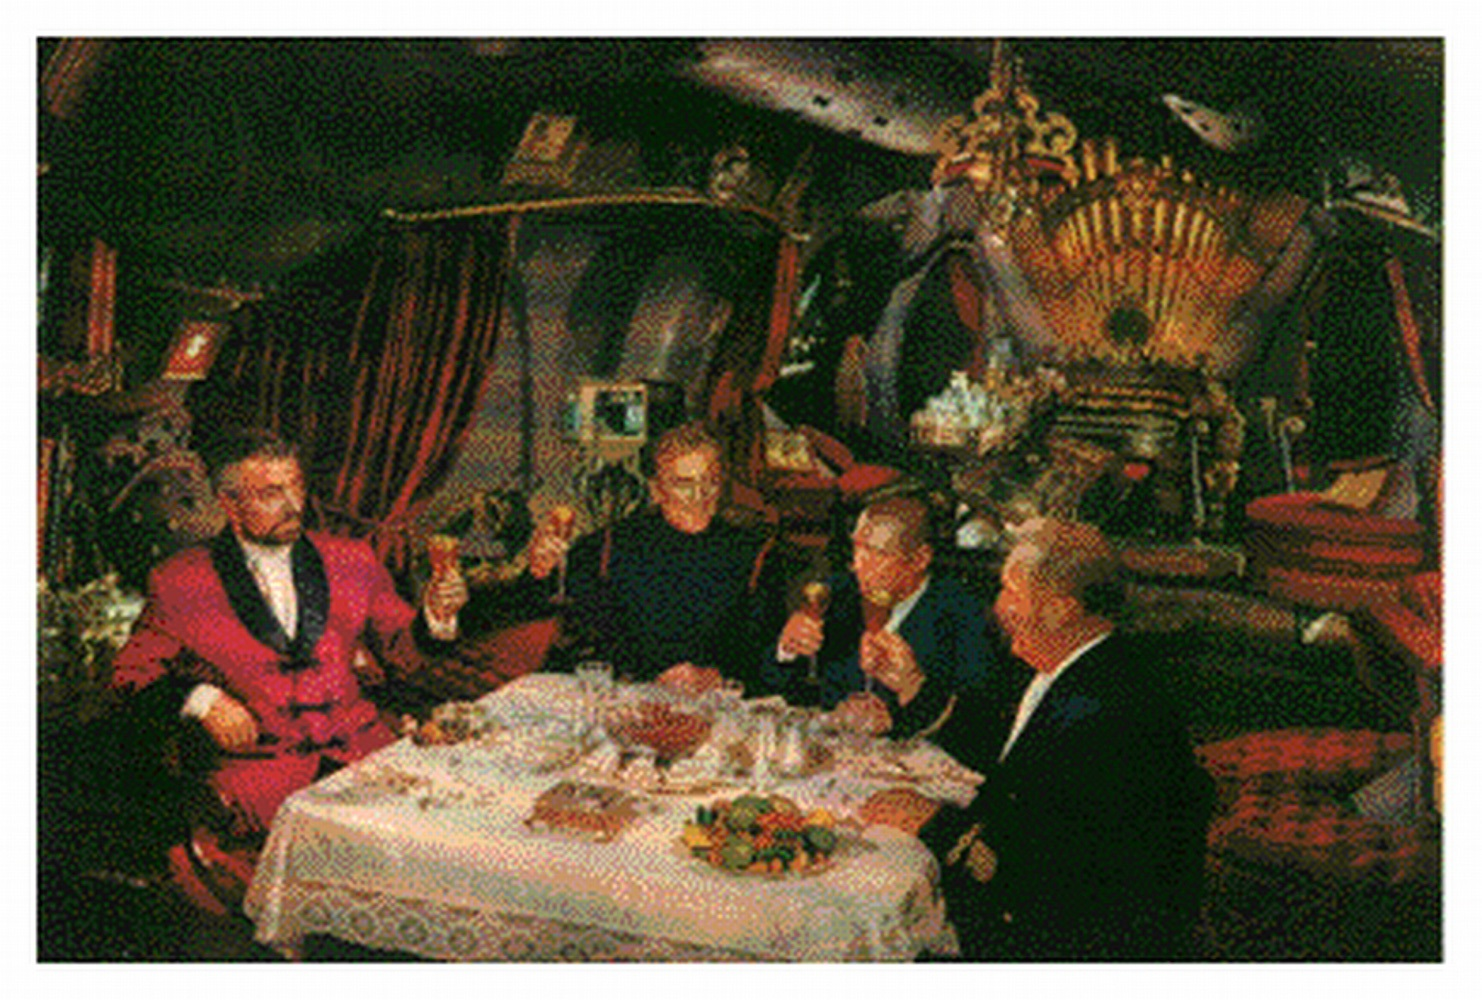 Lobby card with interior of the Nautilus. Notice the large pipe organ at the back of the salon with the Nemo crest